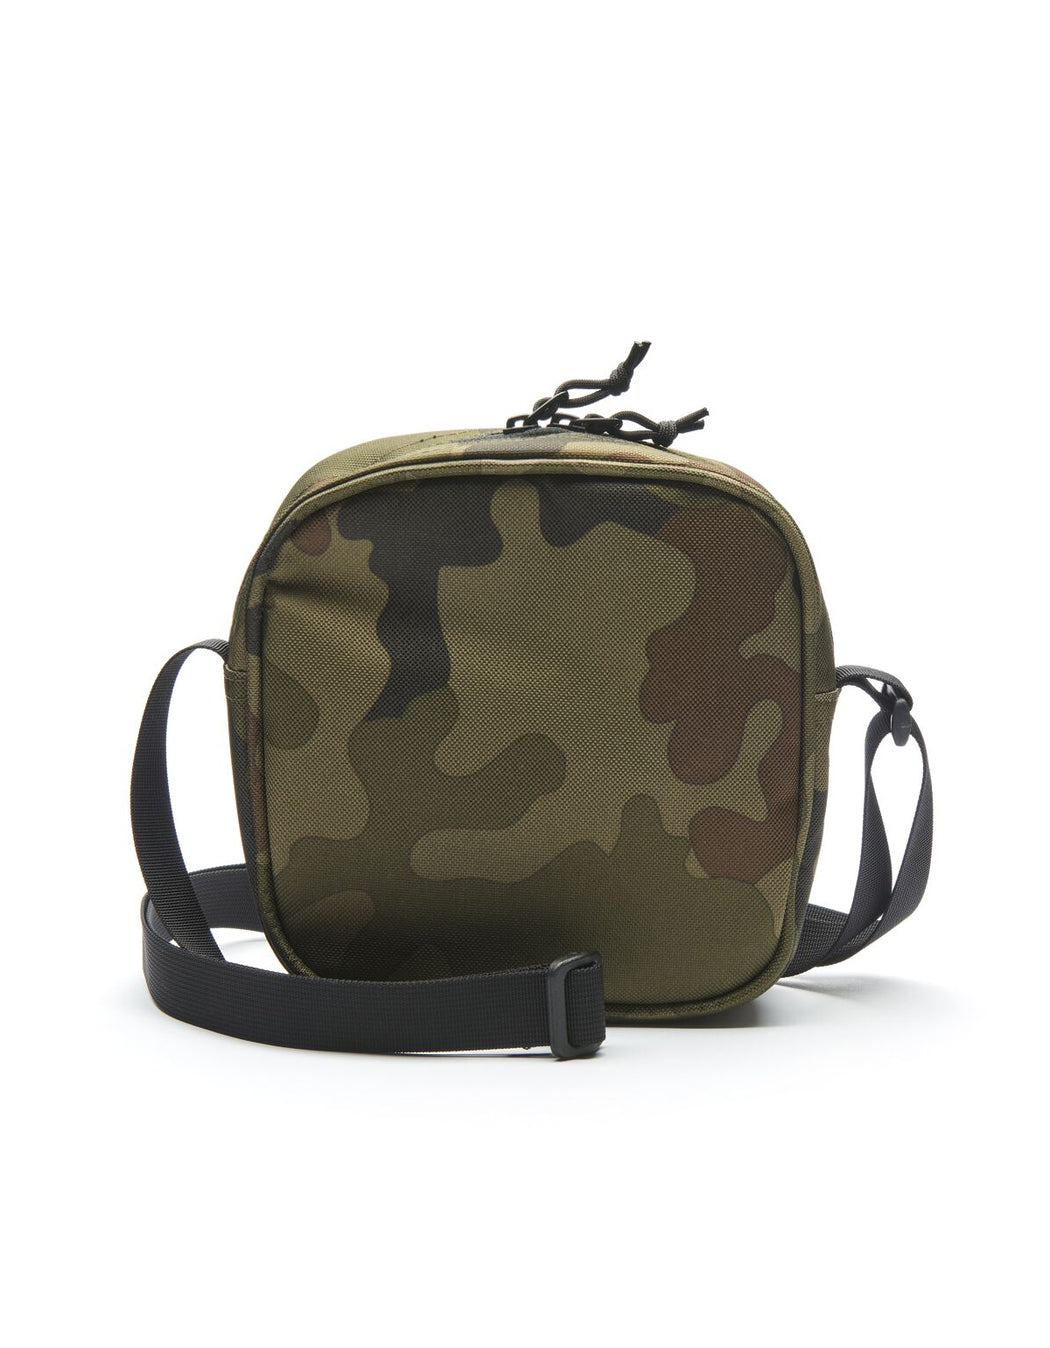 Polar Cordura Dealer Bag Camouflage